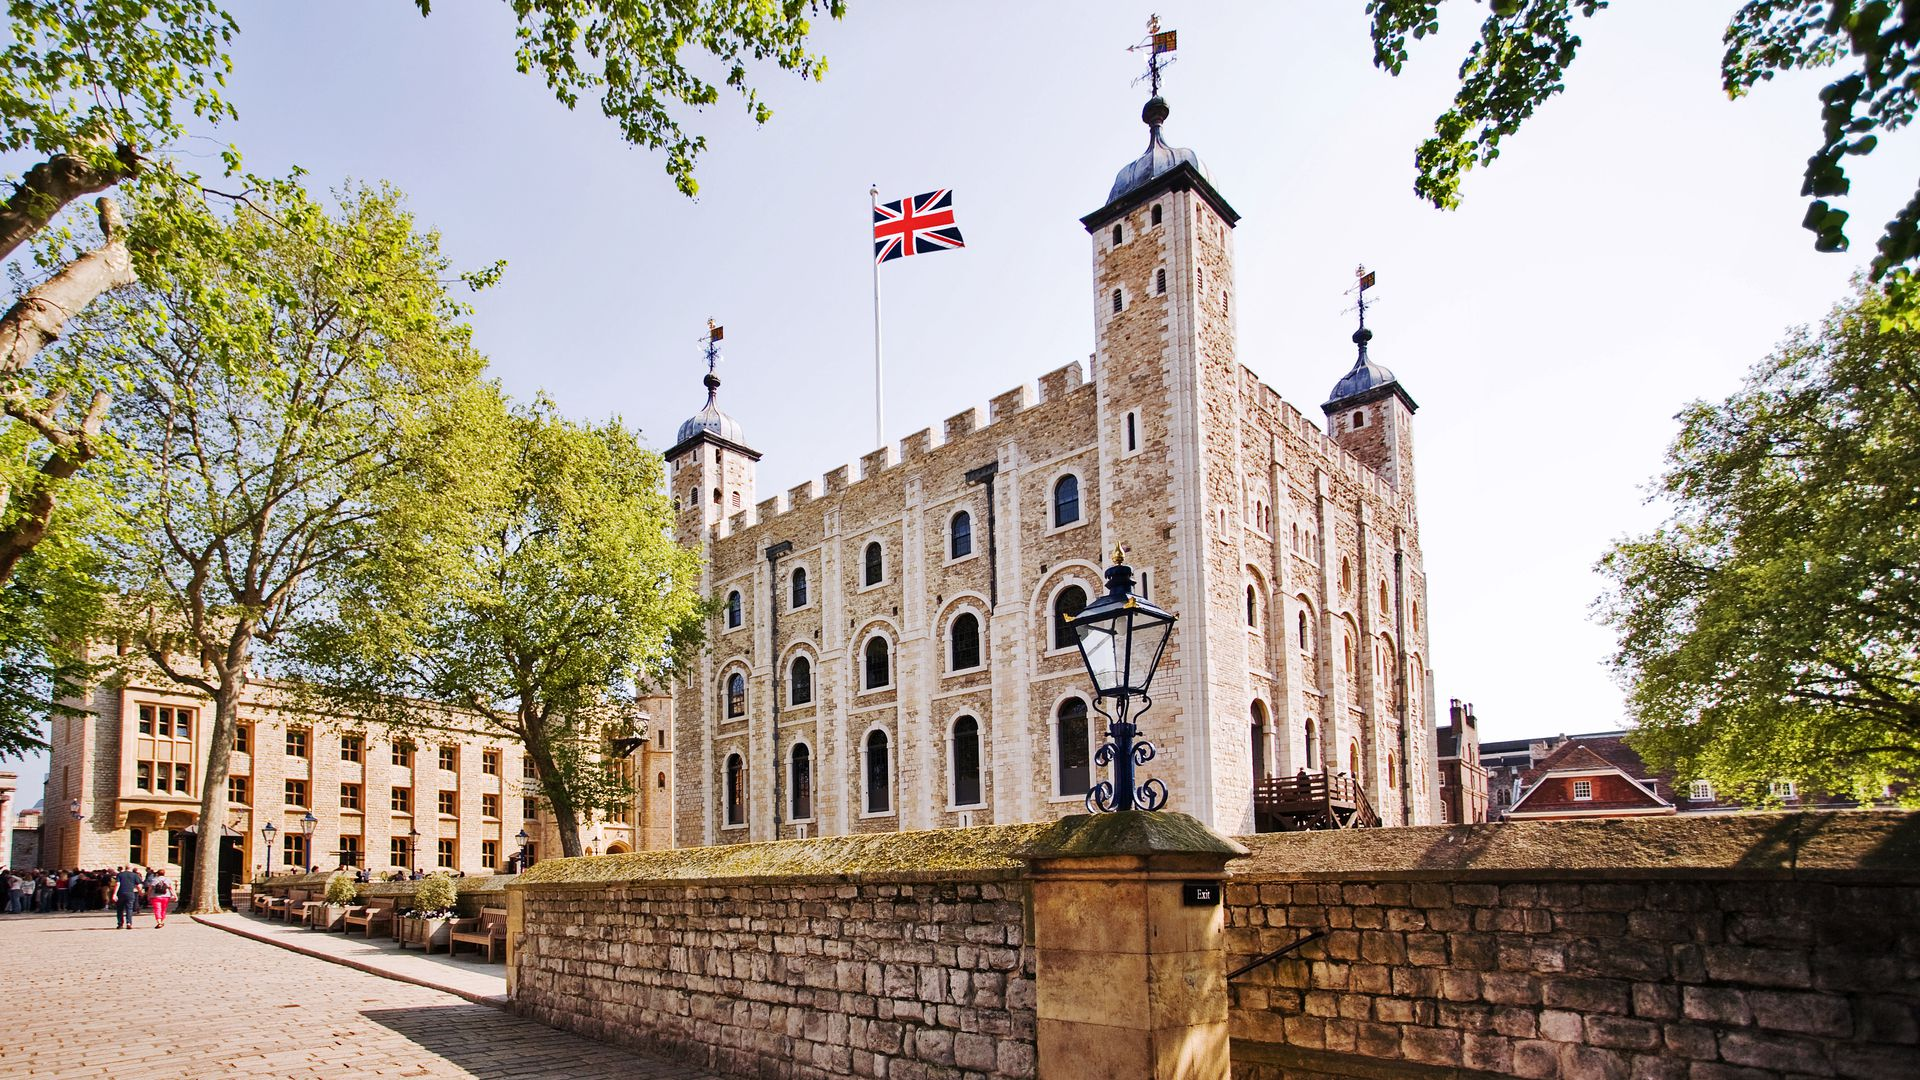 The Tower of London: Admission Ticket & Audio Tour